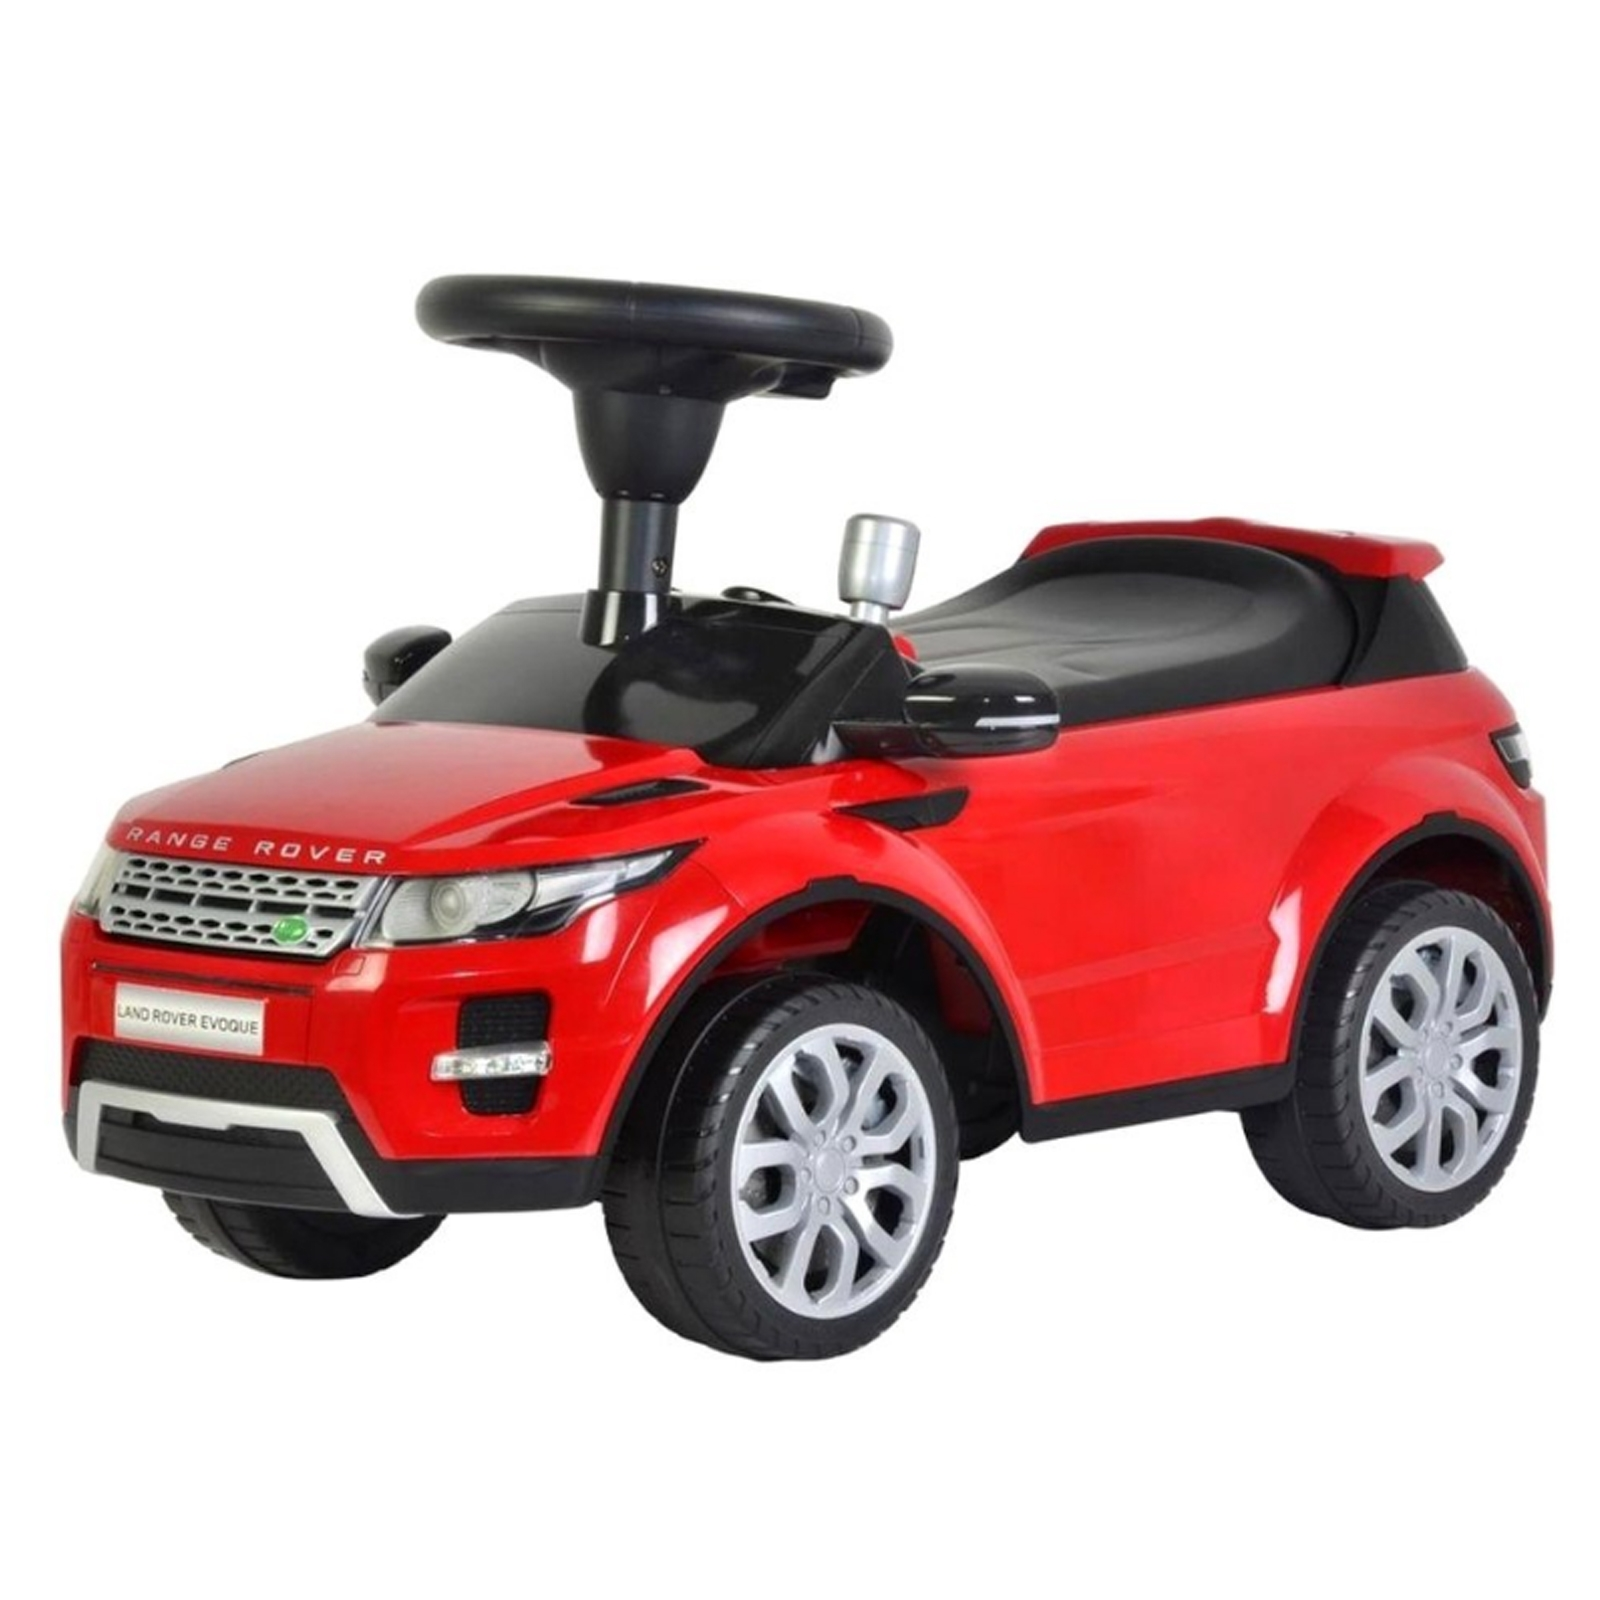 Range Rover Licensed Kids Ride On Push Car - Red